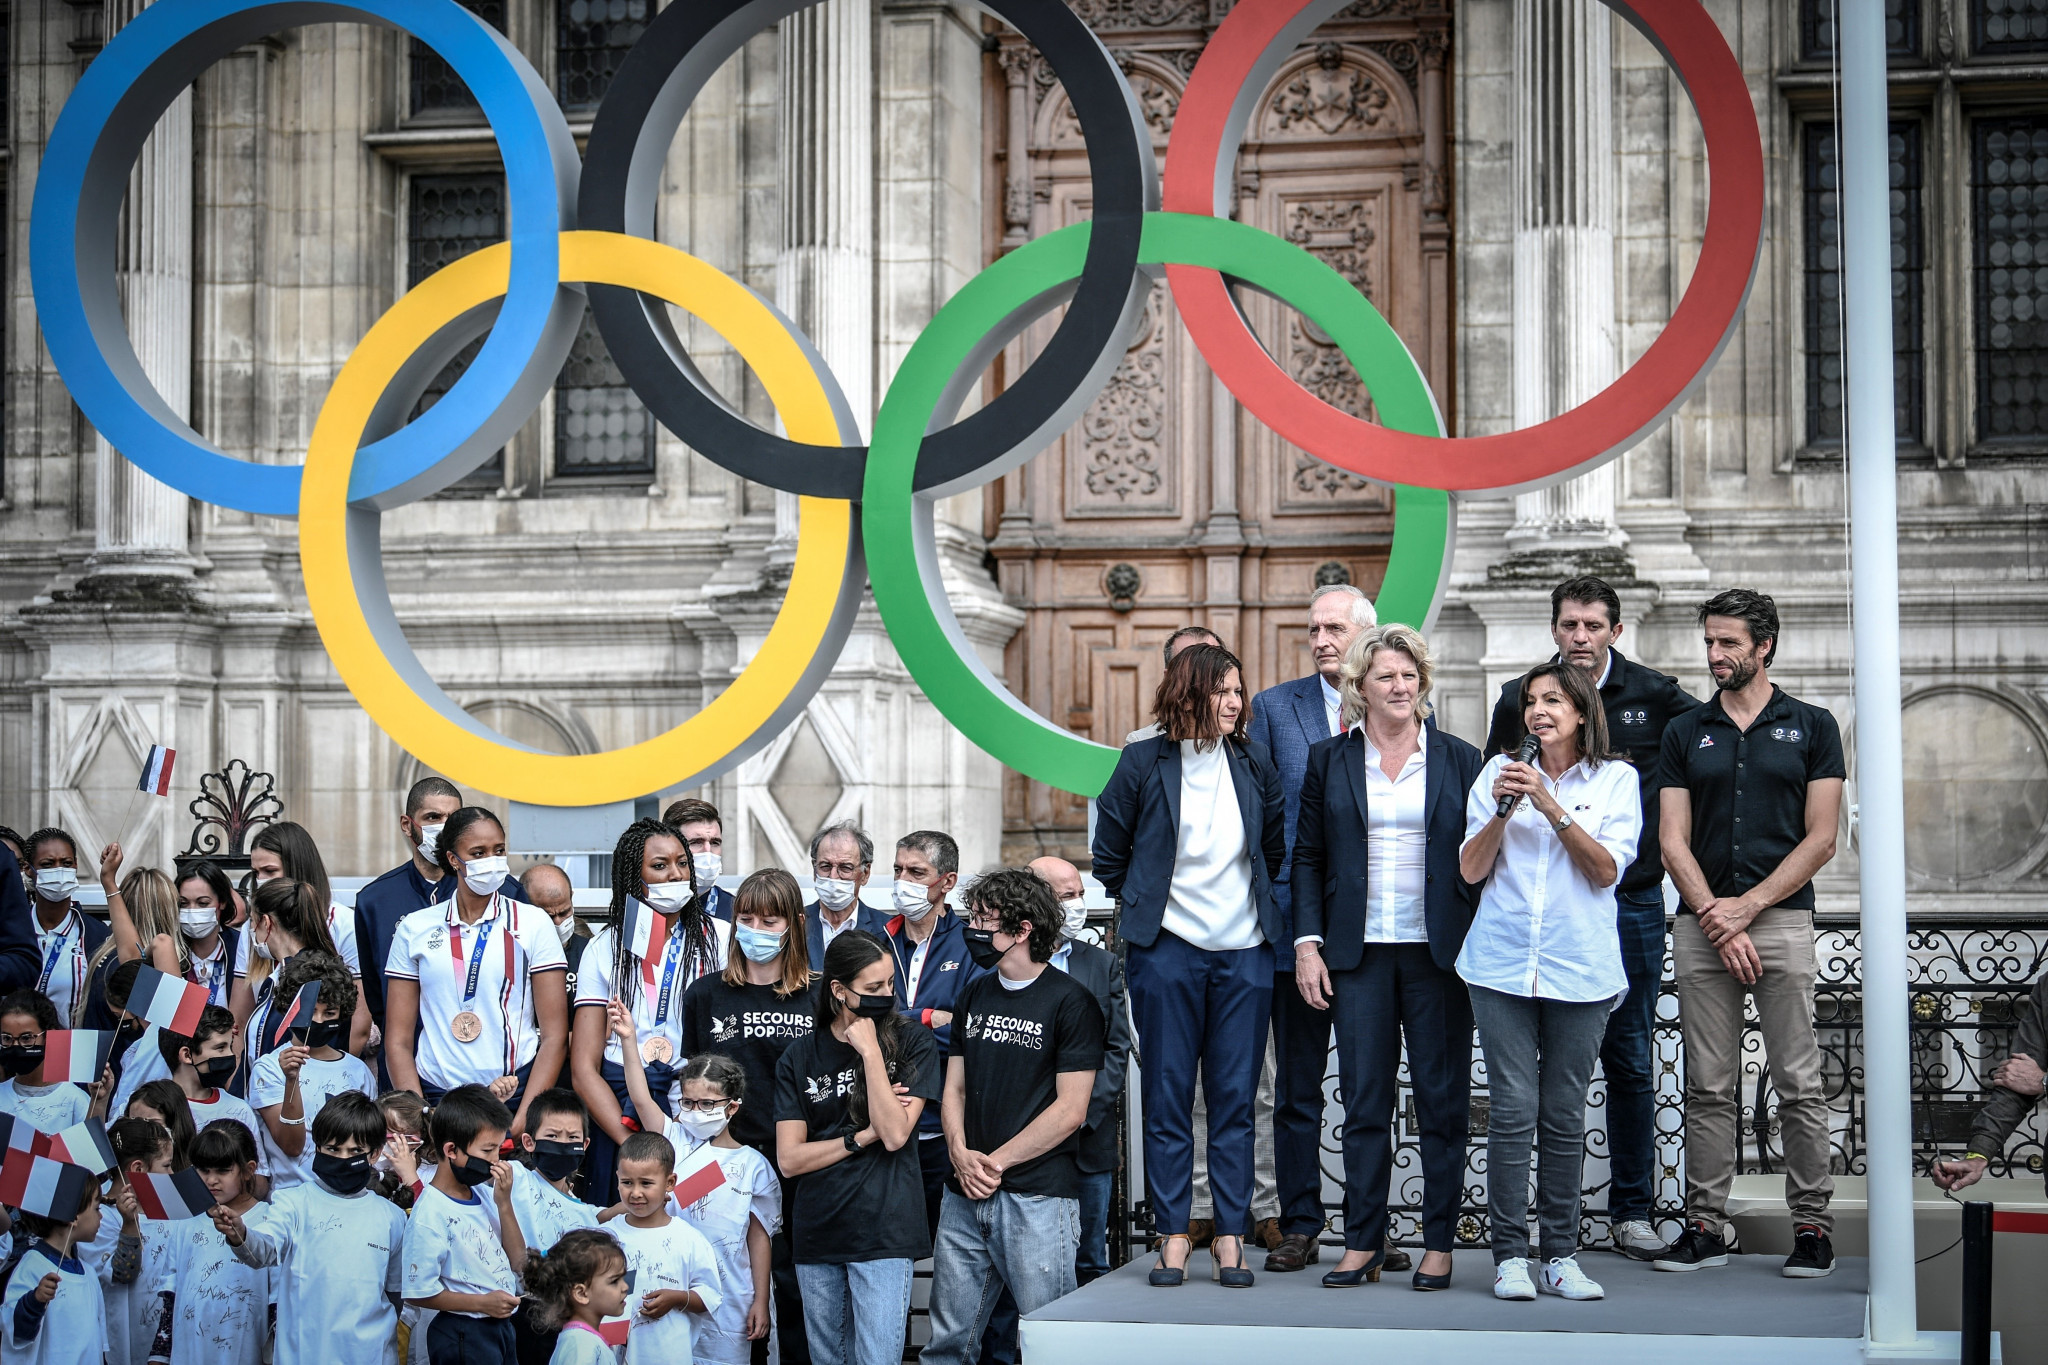 Paris 2024 establishes volunteer charter and outlines Torch Relay plans